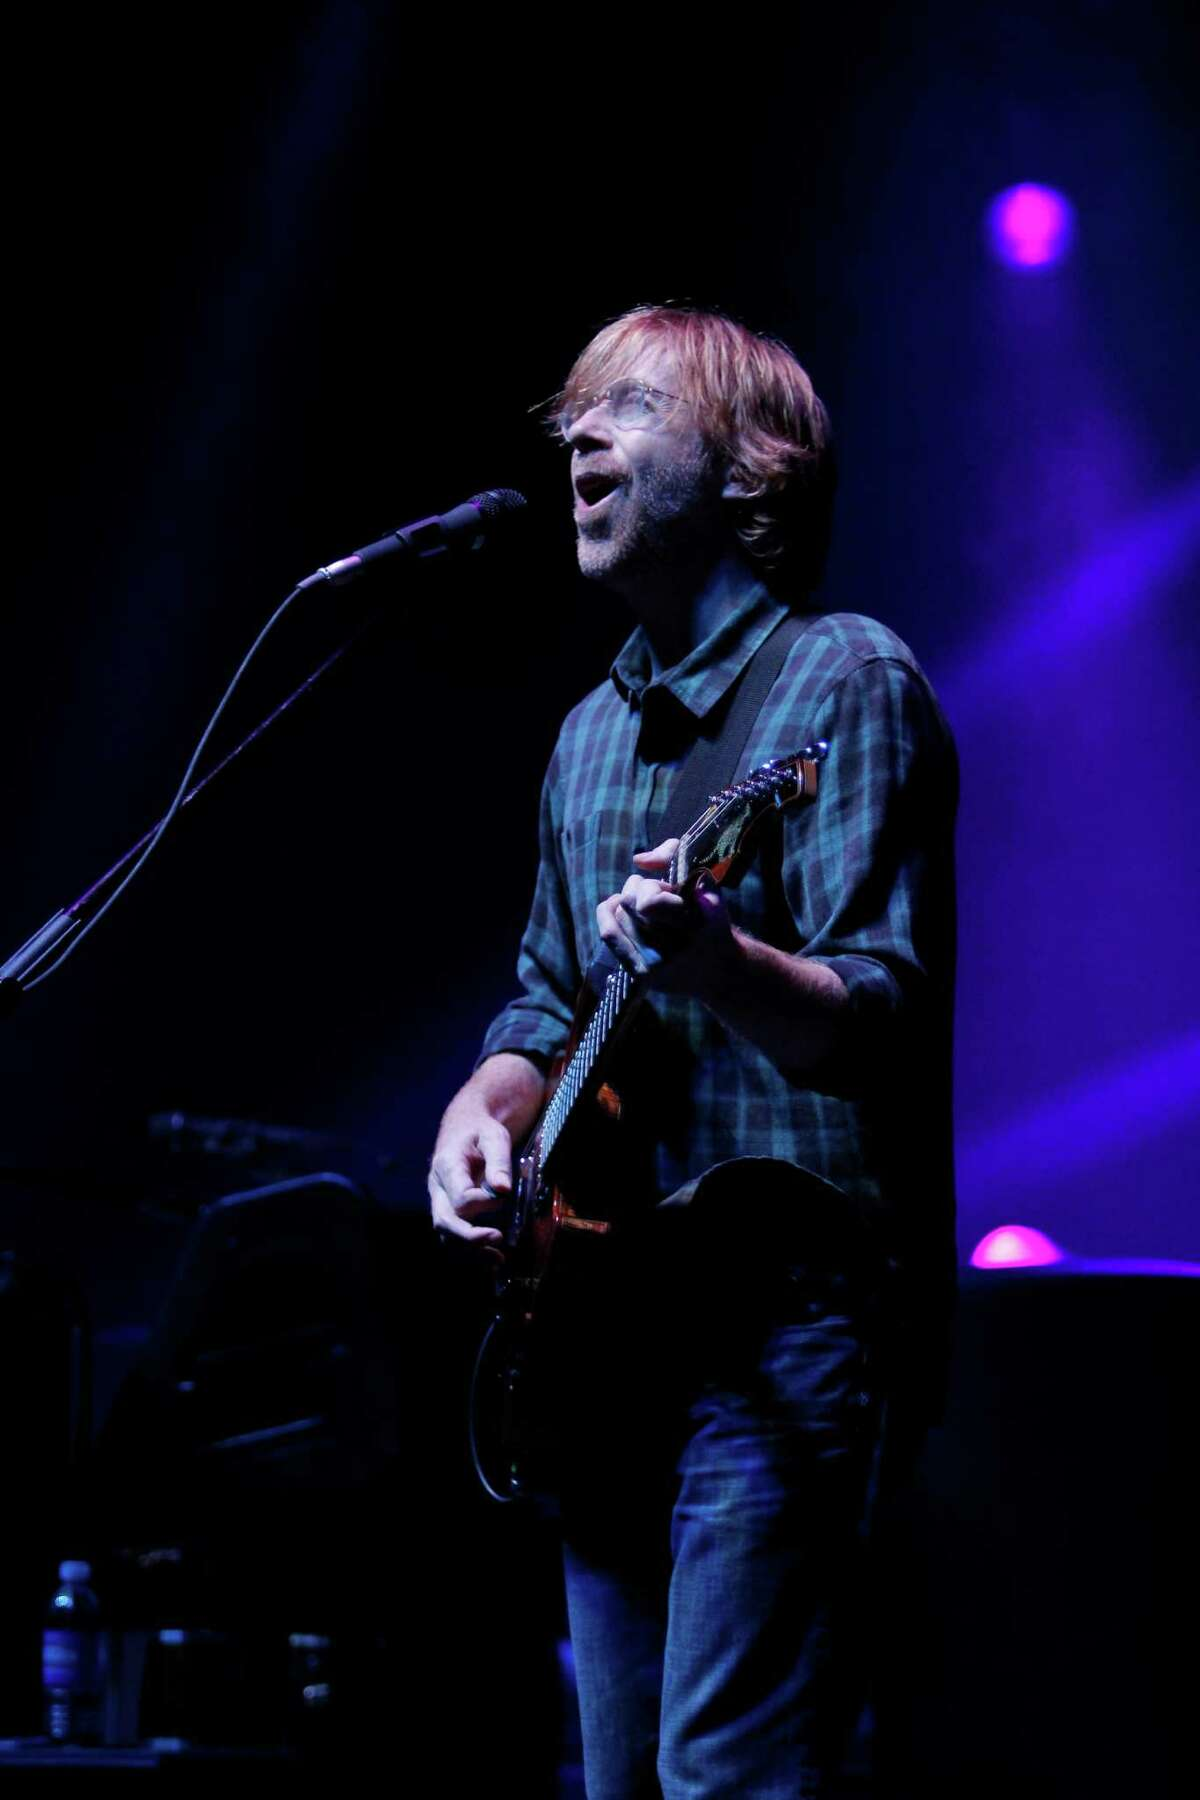 Can't get enough Phish? Click through the slideshow of their concerts in the Capital Region and beyond. Trey Anastasio lead vocalist and guitarist for the band Phish, performs at the Saratoga Performing Arts Center Friday night, July 6, 2012 in Saratoga Springs, N.Y. (Dan Little/Special to the Times Union)